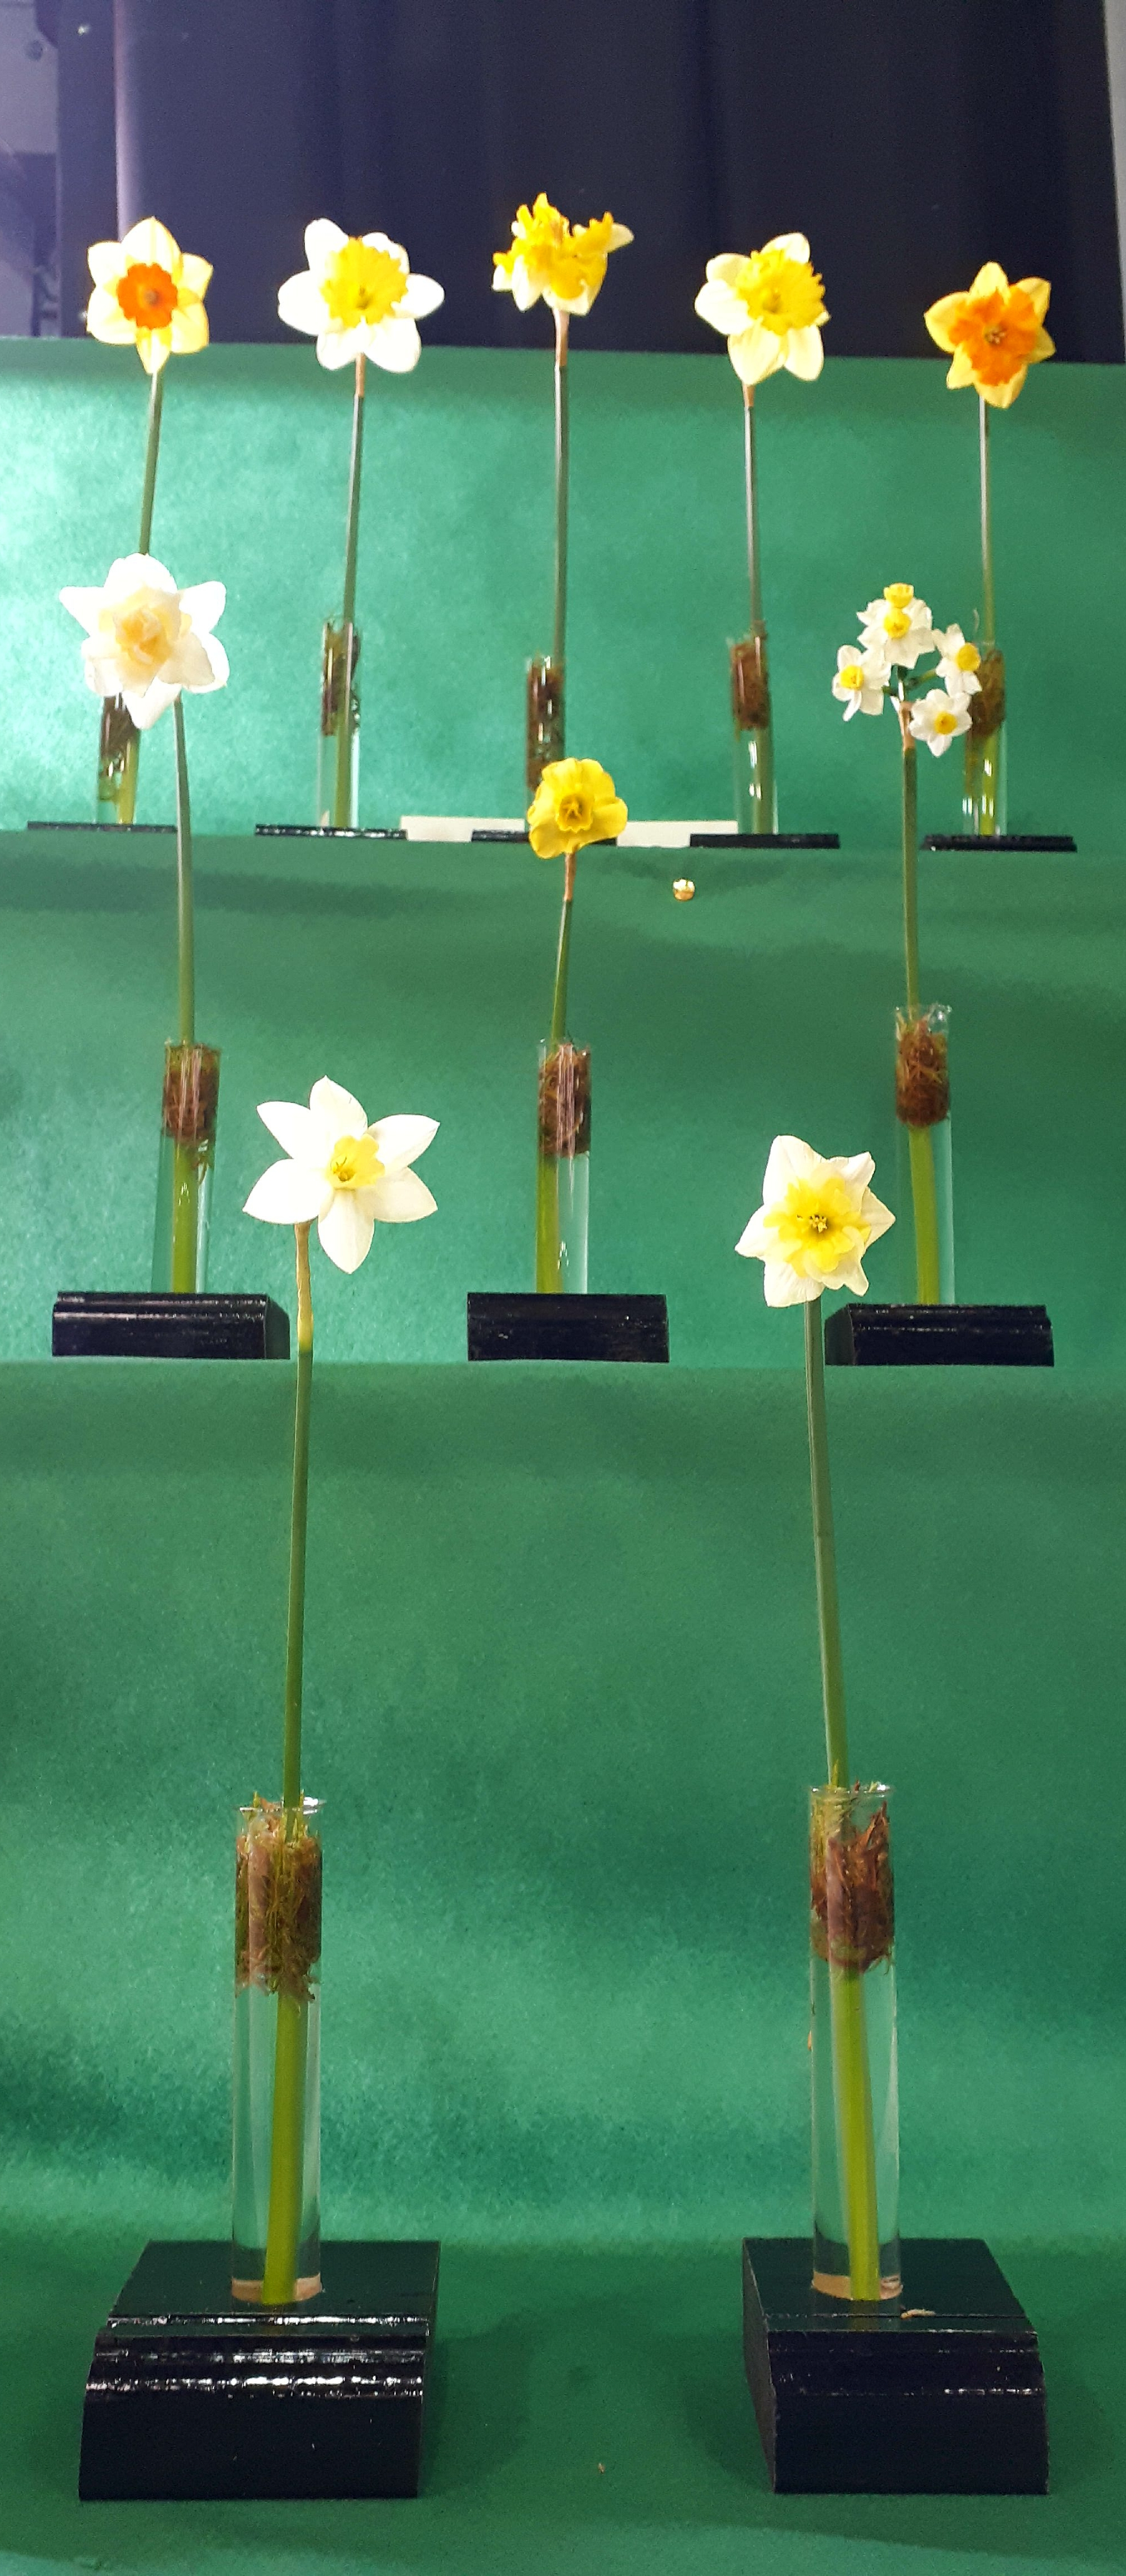 Club entry into Daffodil Show